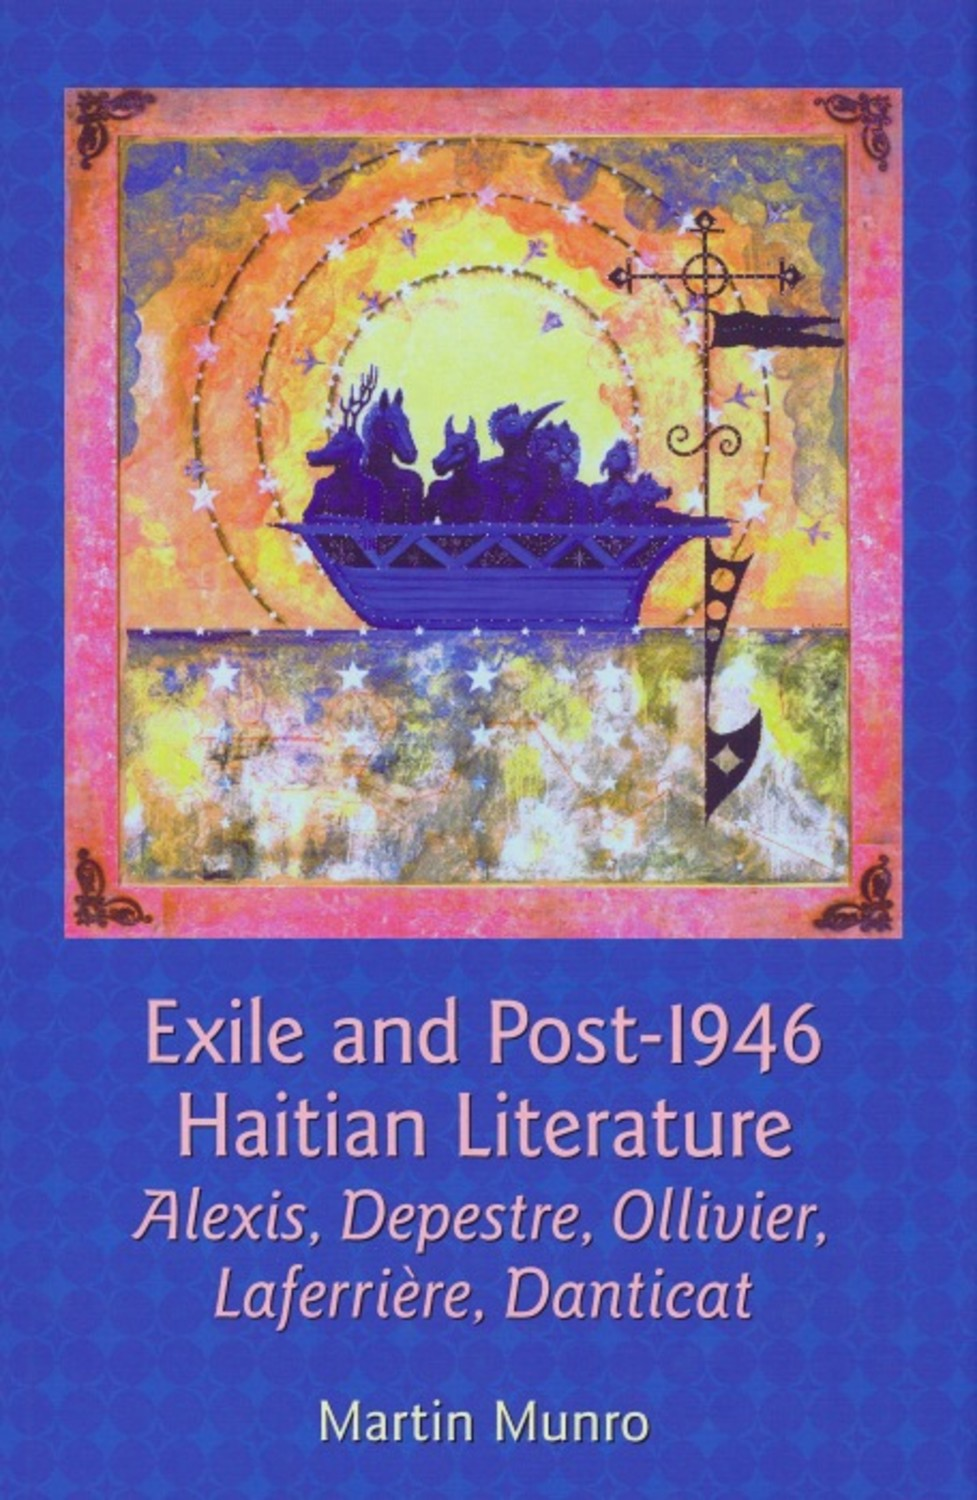 Exile and Post-1946 Haitian Literature